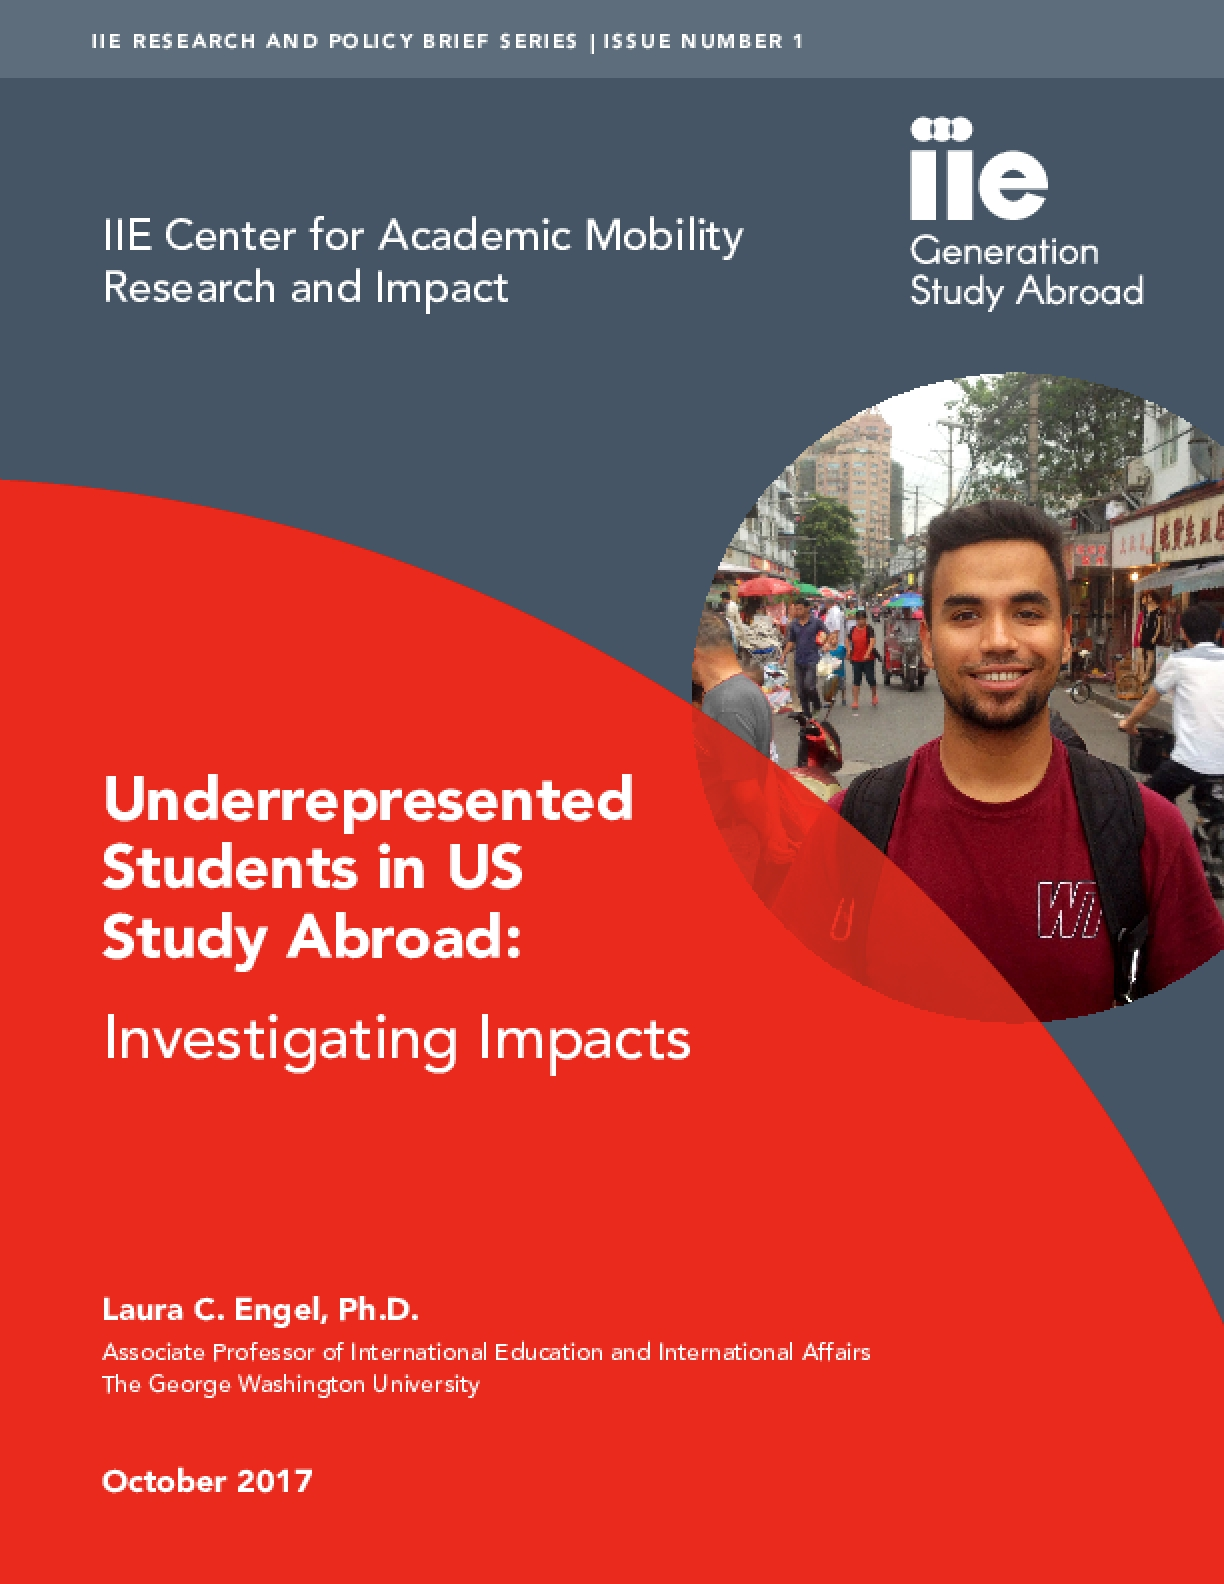 Underrepresented Students in US Study Abroad: Investigating Impacts